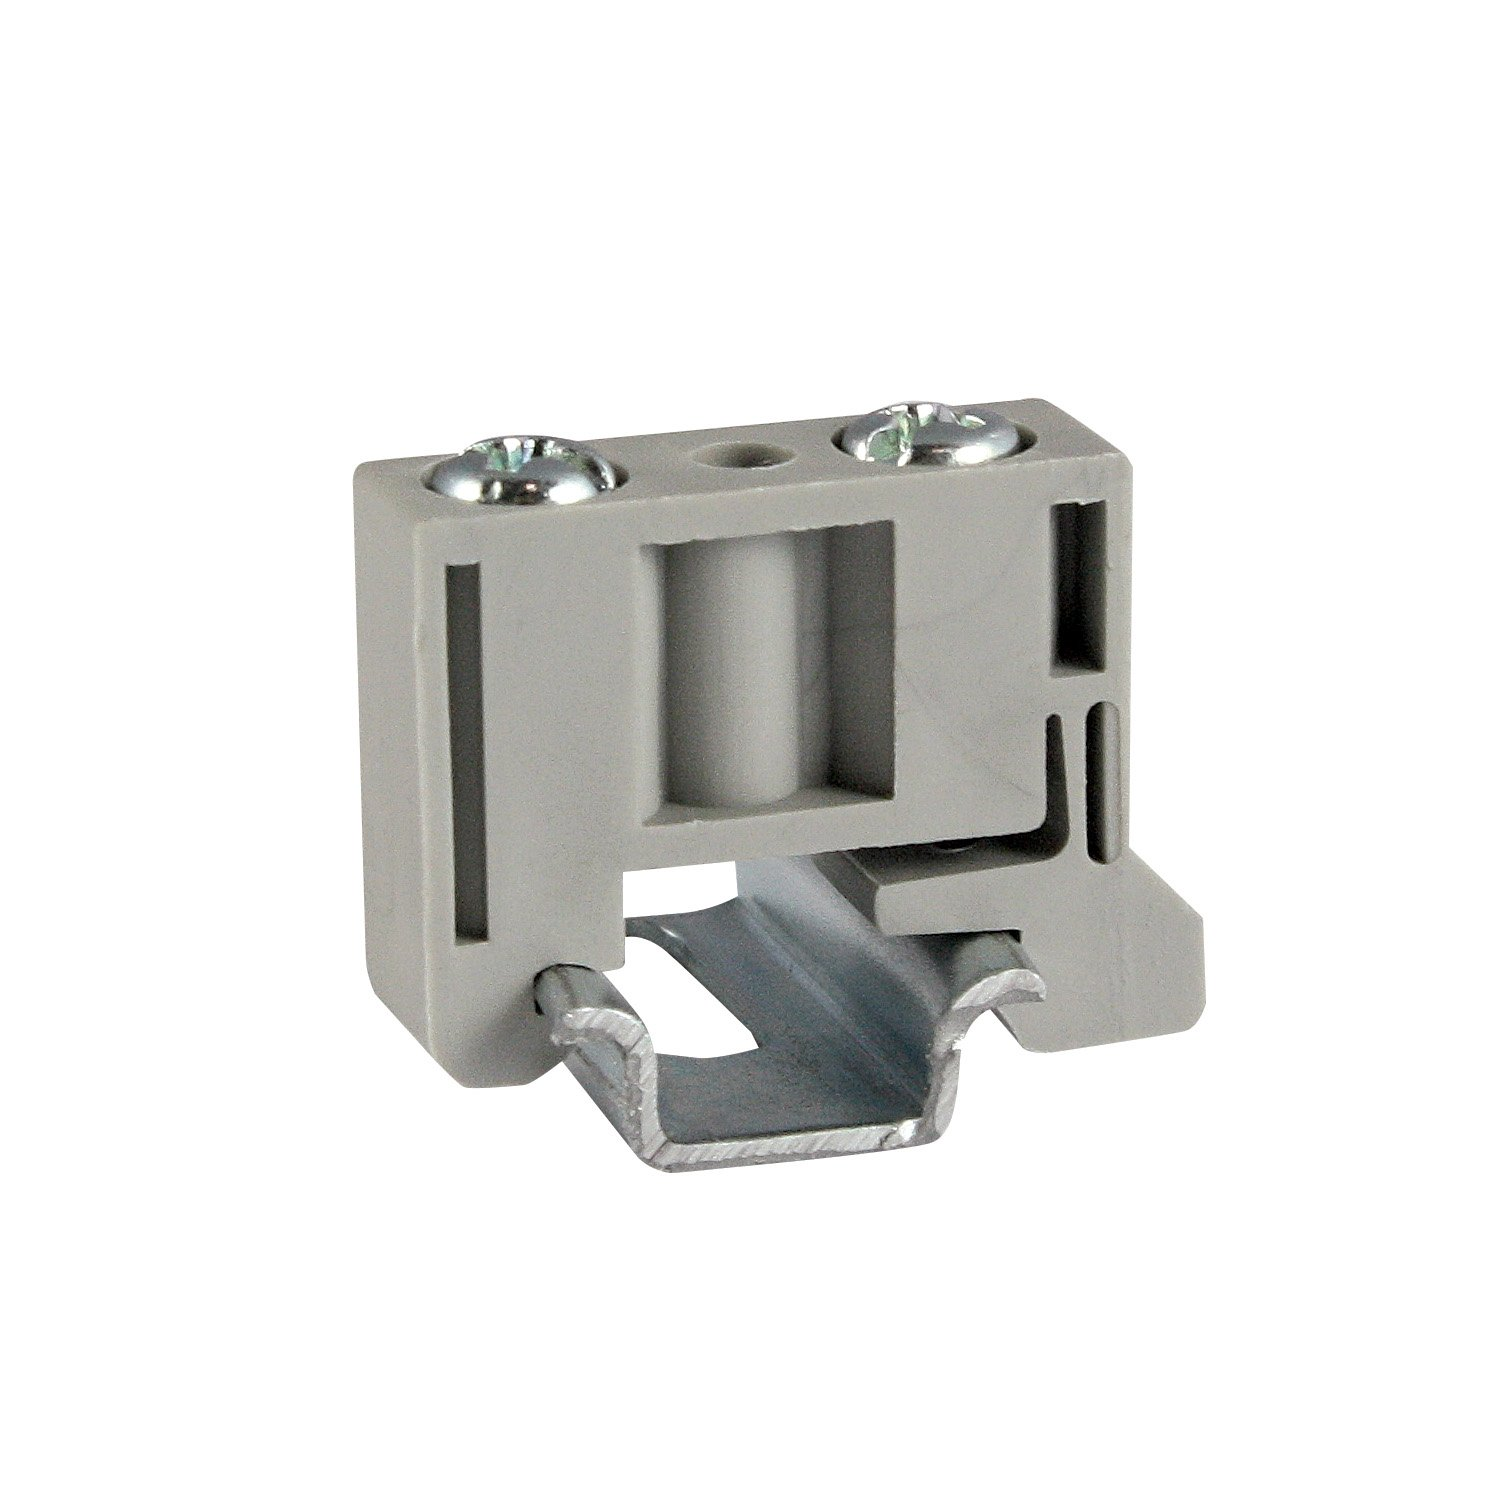 ASI ASIEMBK1 End Stop for DIN Micro-Miniature Rail Max 50% OFF Mounted Termi Manufacturer direct delivery